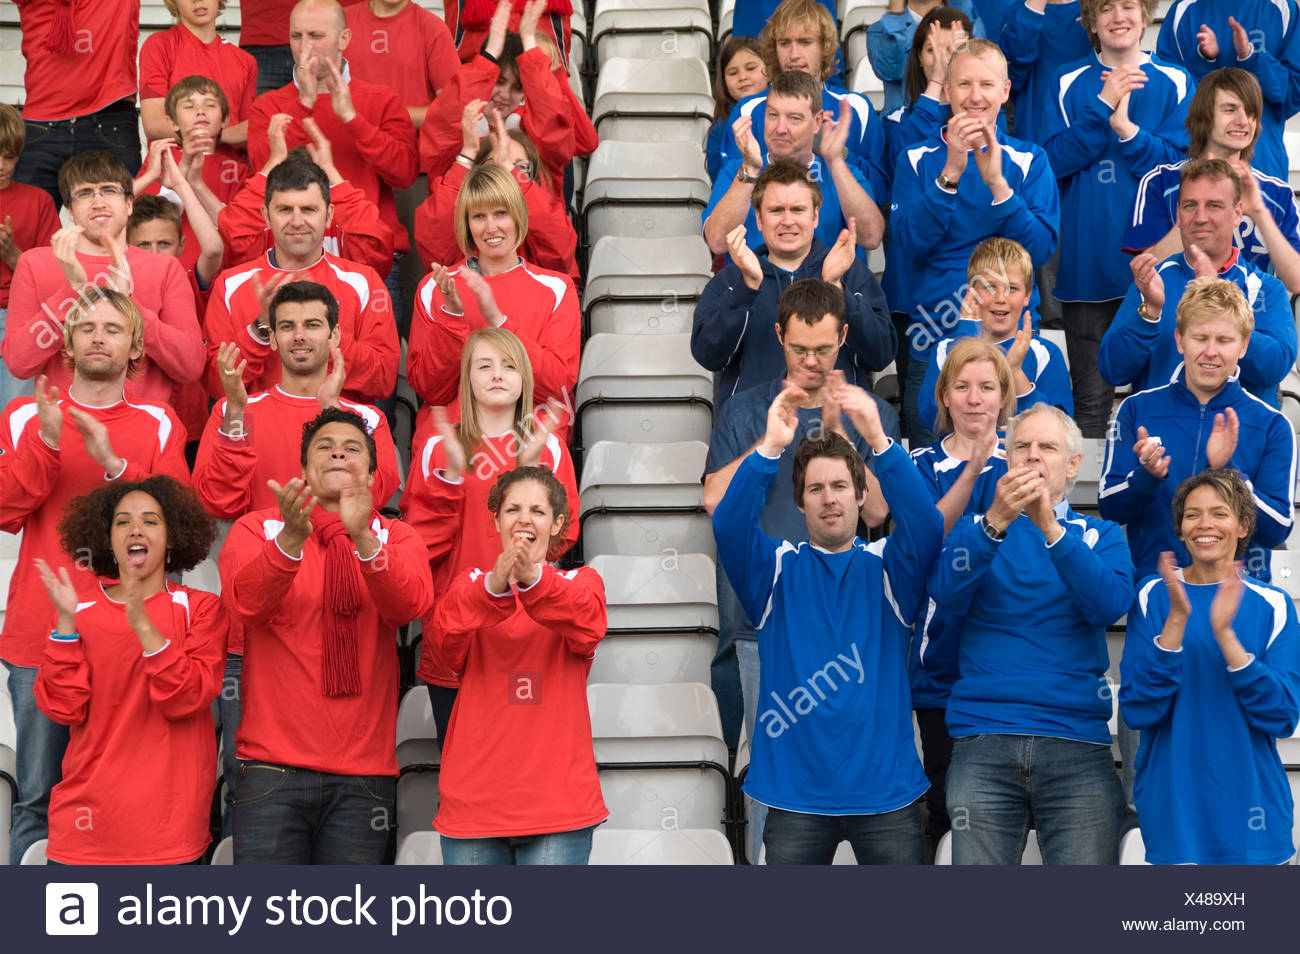 Rival fans at football match - Stock Image